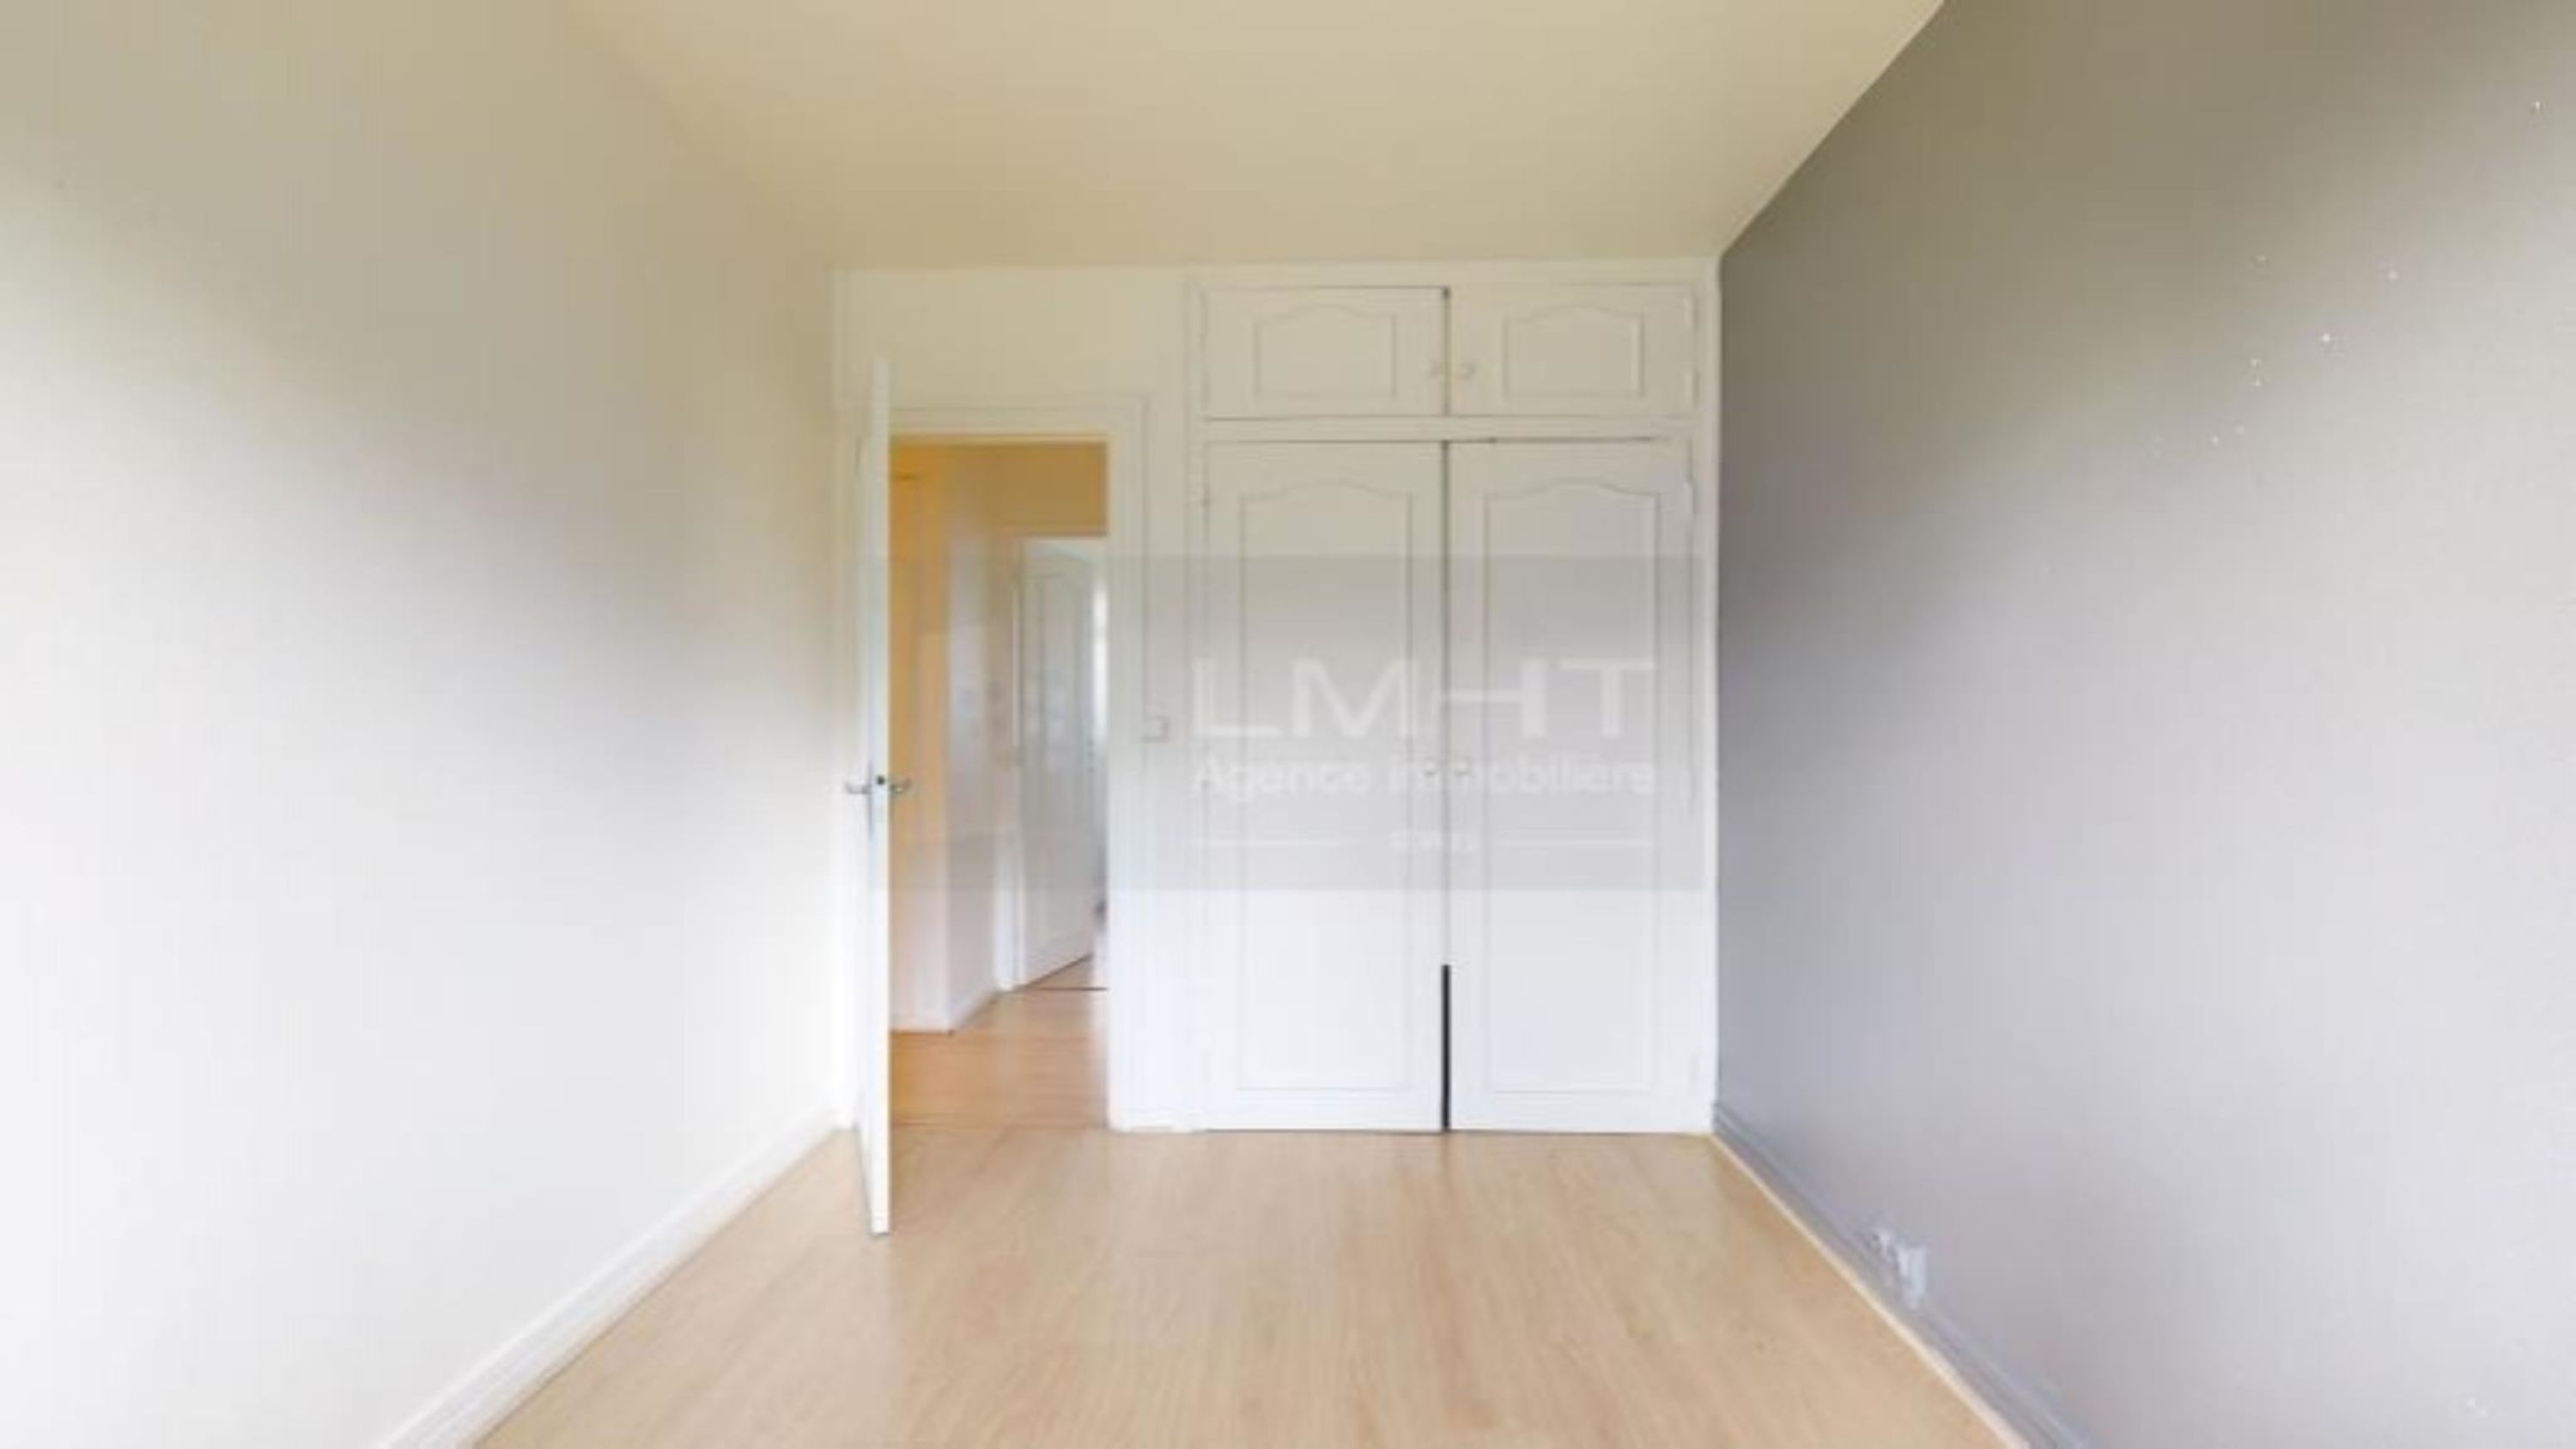 agence immobilière sevres 92 le chesnay 78 achat vente location appartement maison immobilier LMHT ANF ADOWBFLG